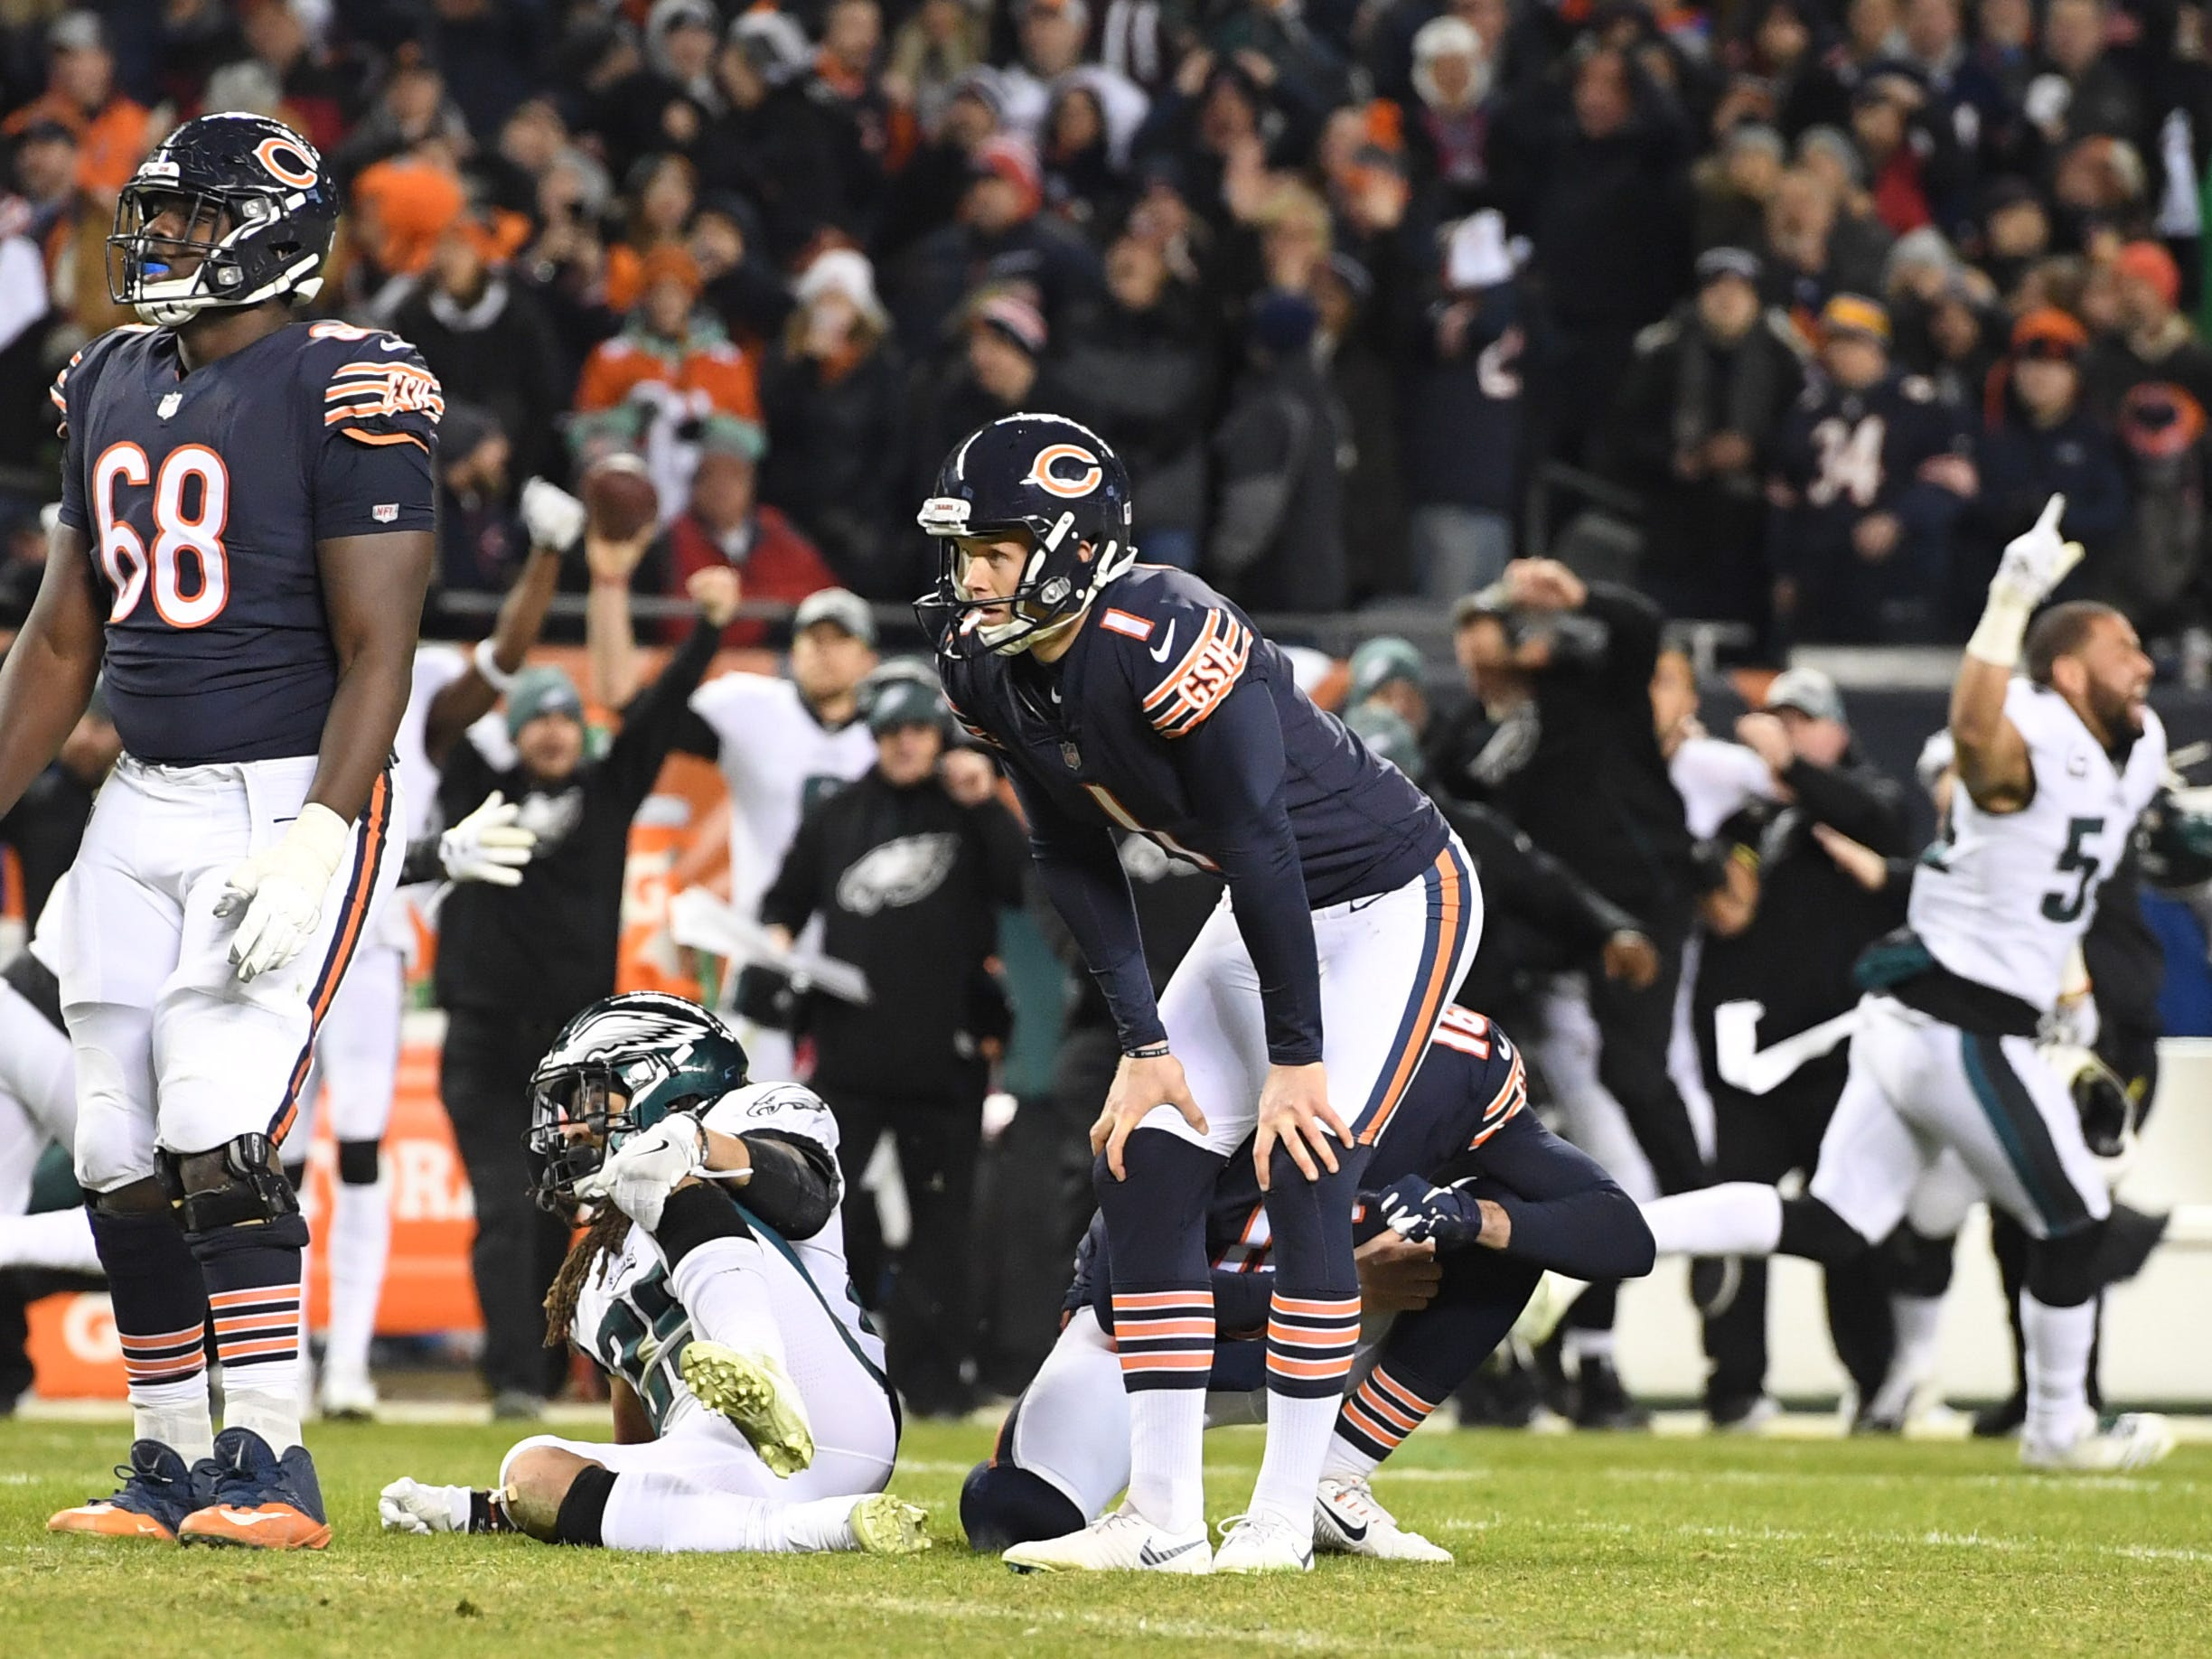 Chicago Bears kicker Cody Parkey (1) reacts after missing a field goal in the final seconds against the Philadelphia Eagles in the wild-card game at Soldier Field.